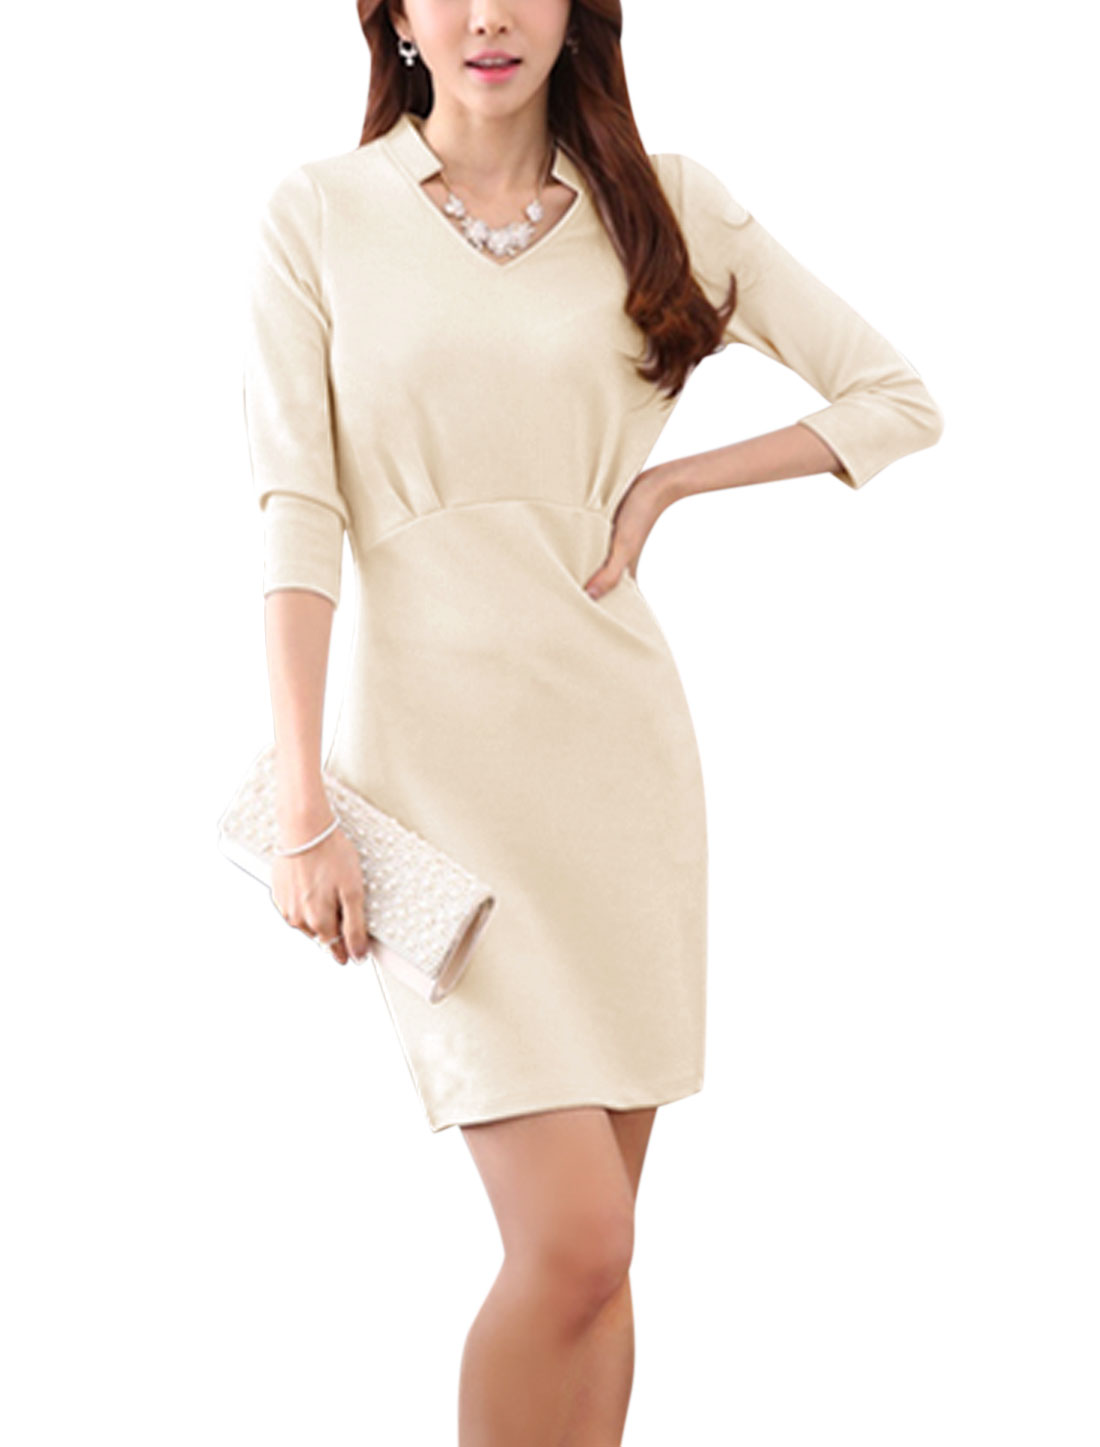 Women 3/4 Sleeve Texture Casual Sheath Dresses Pale Pink L